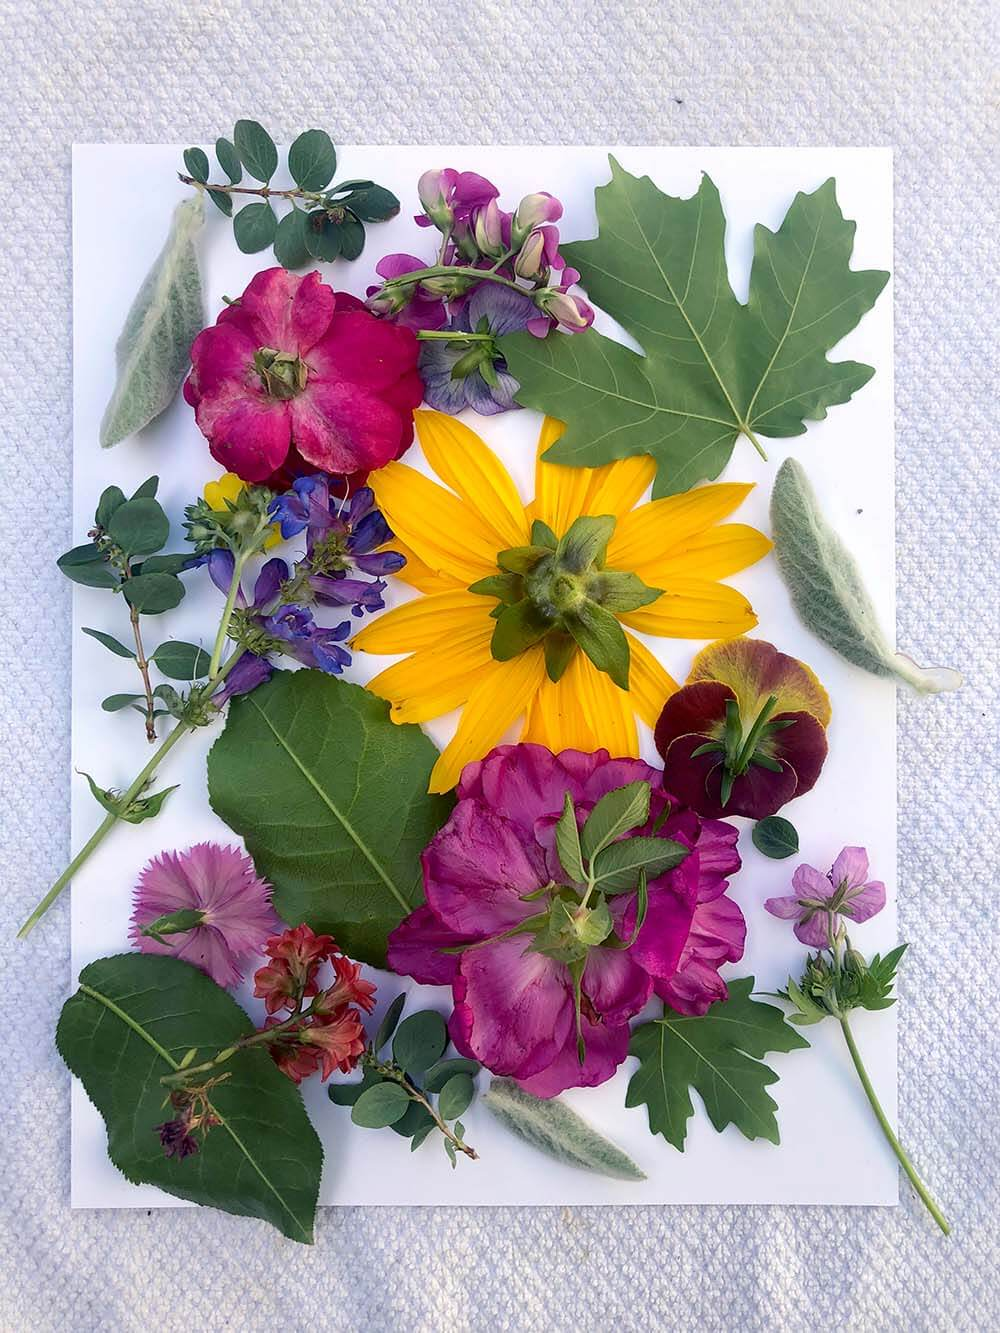 Flowers arranged on paper ready to get hammered